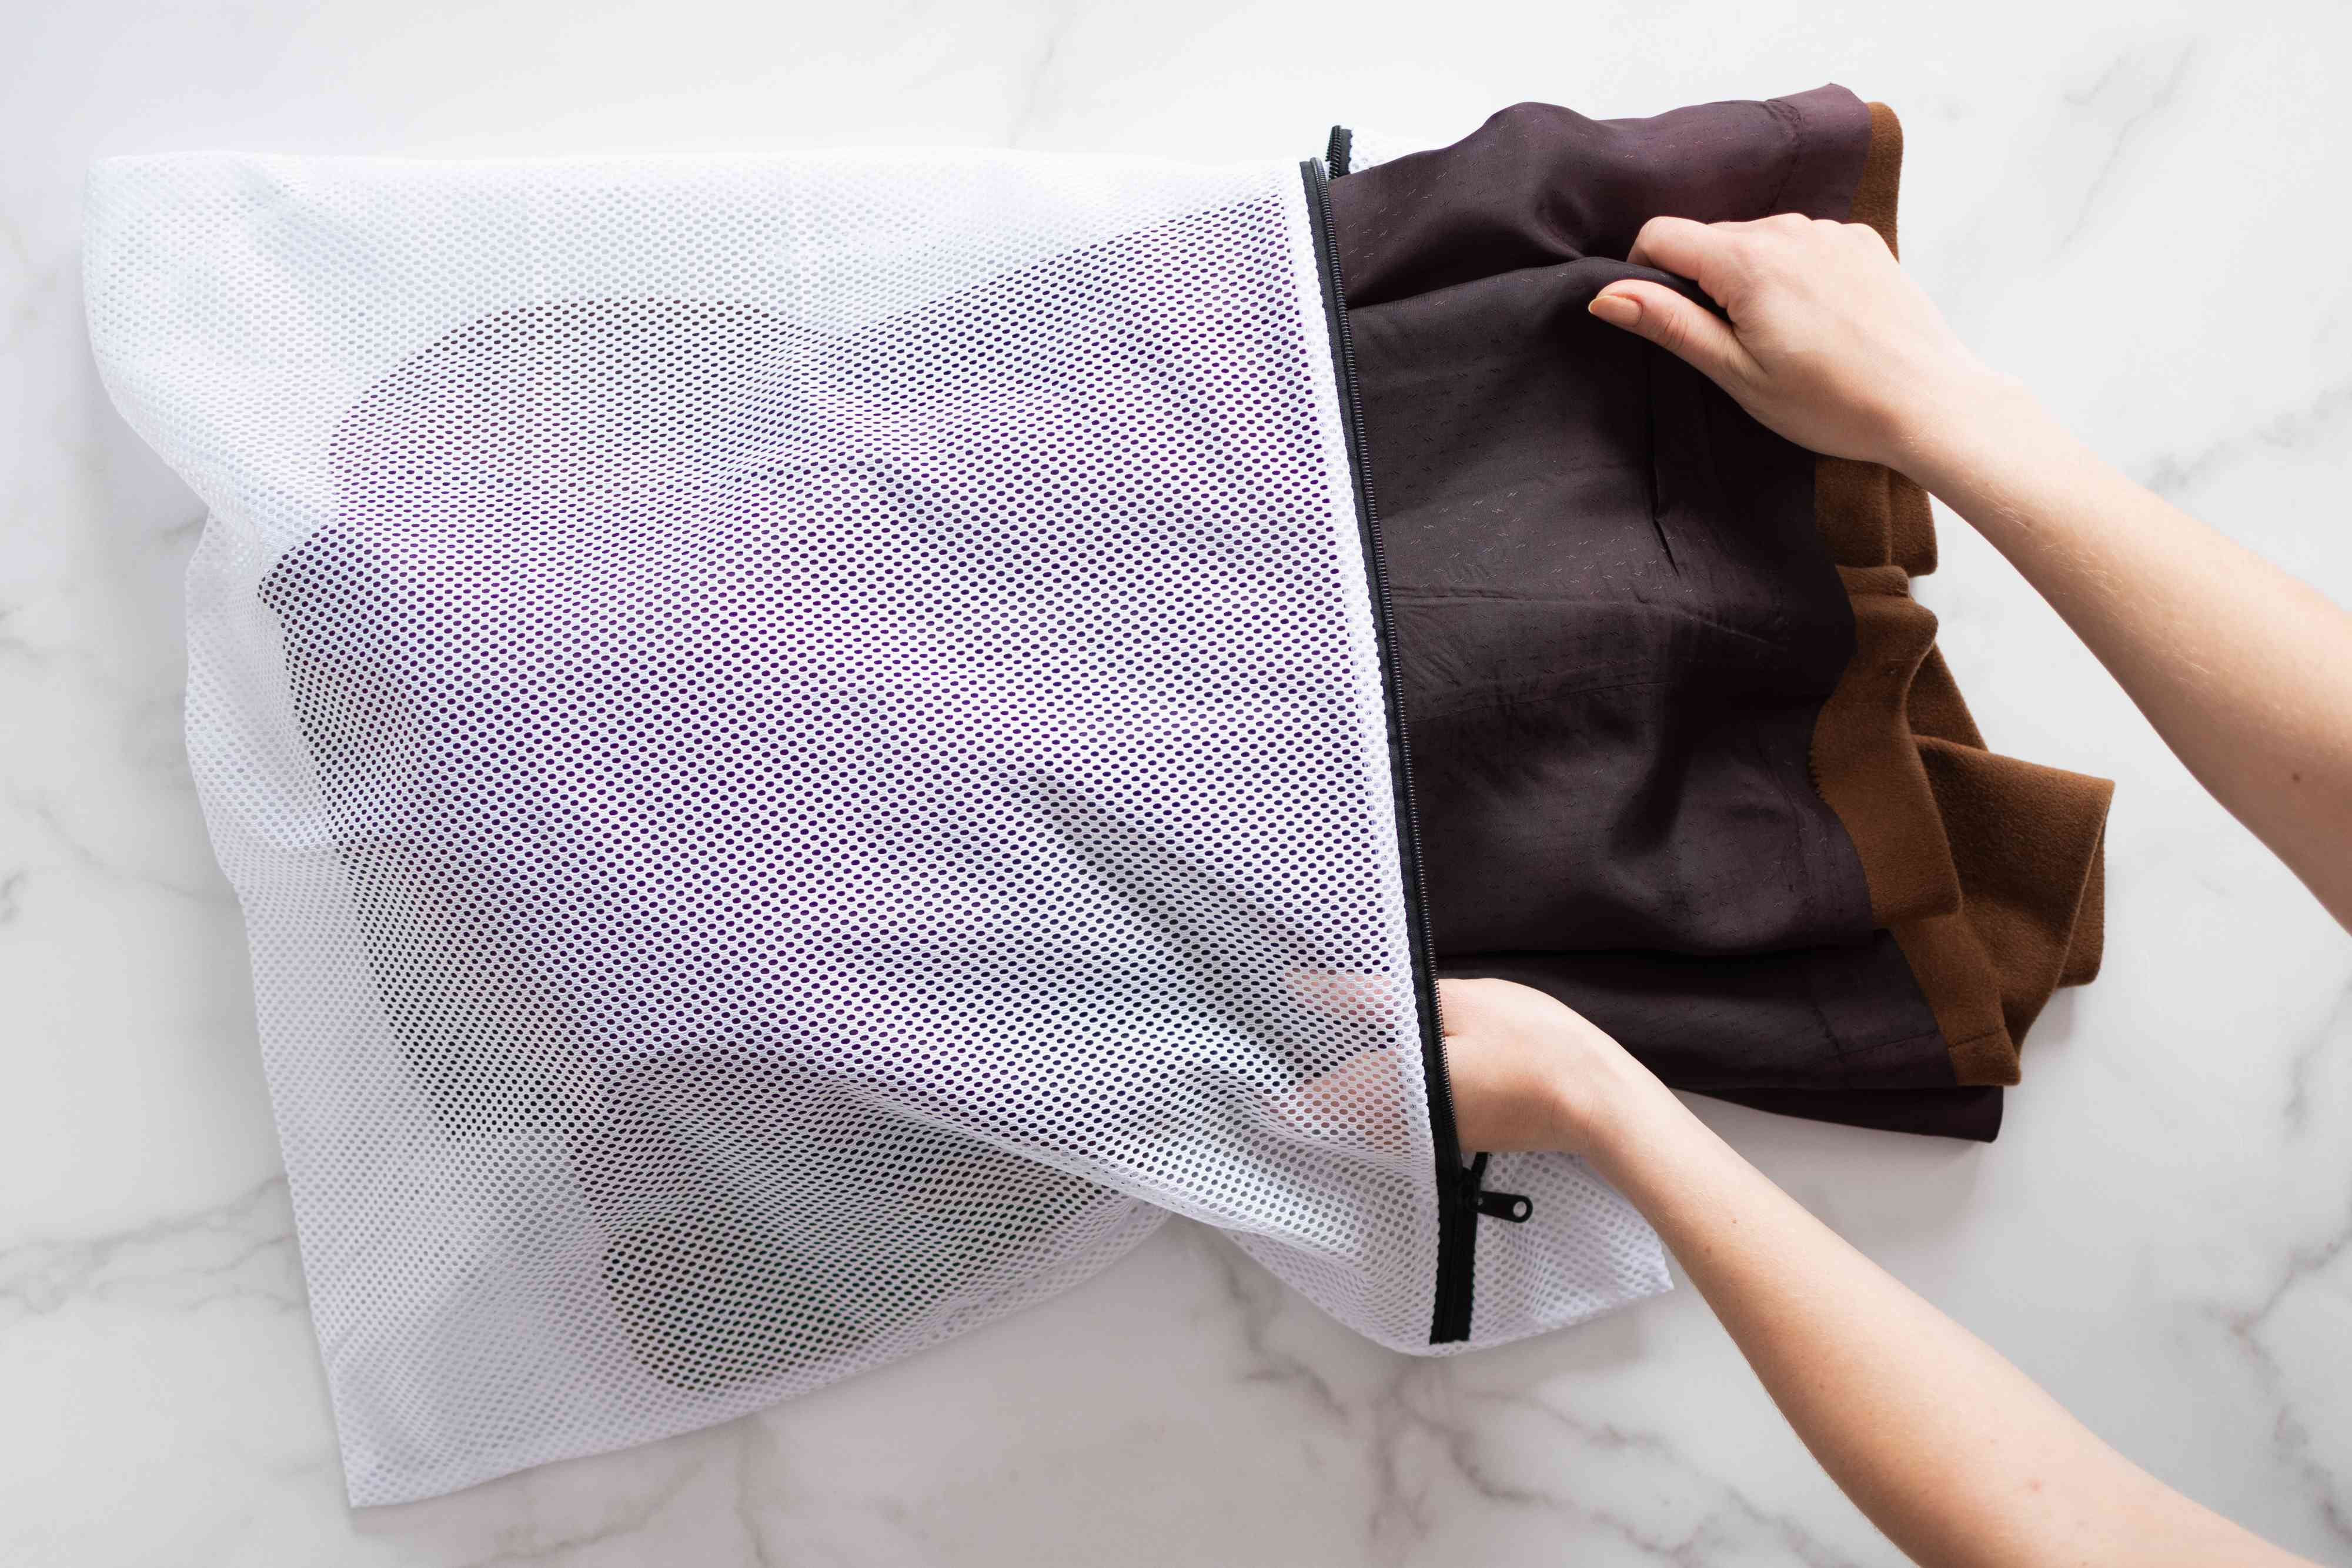 Placing the coat in a large mesh bag